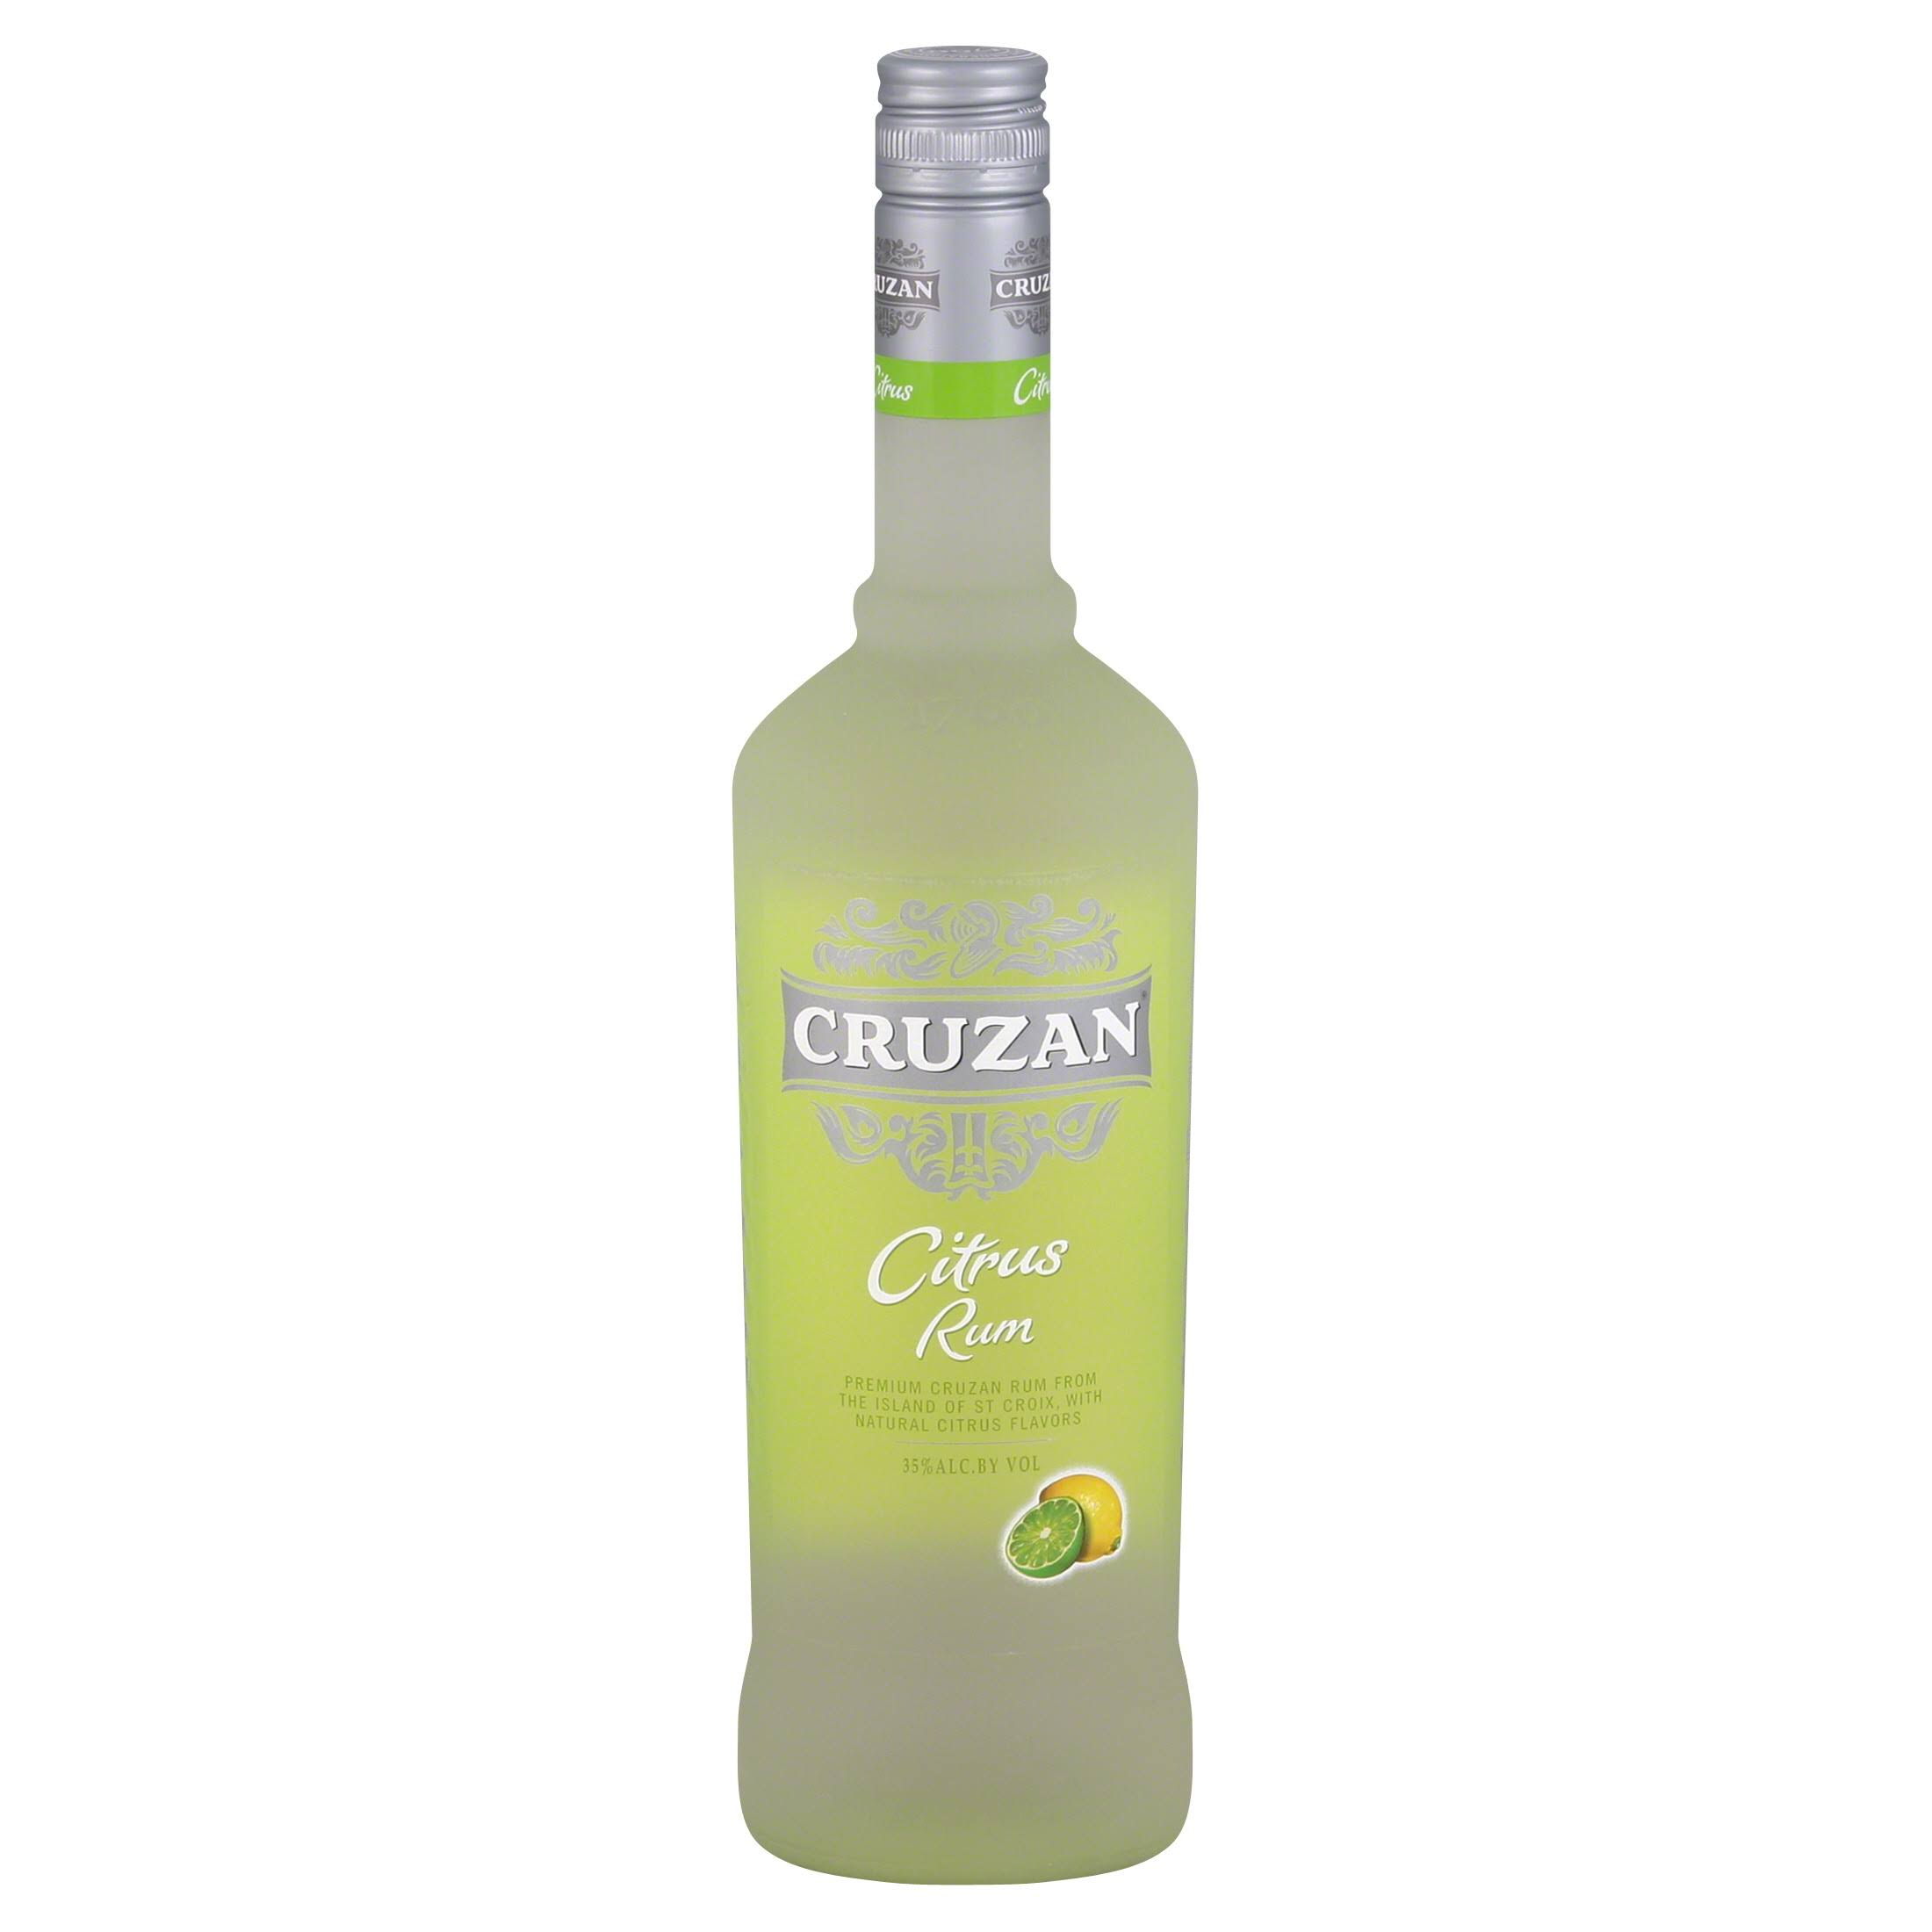 Cruzan Rum, Citrus - 750 ml